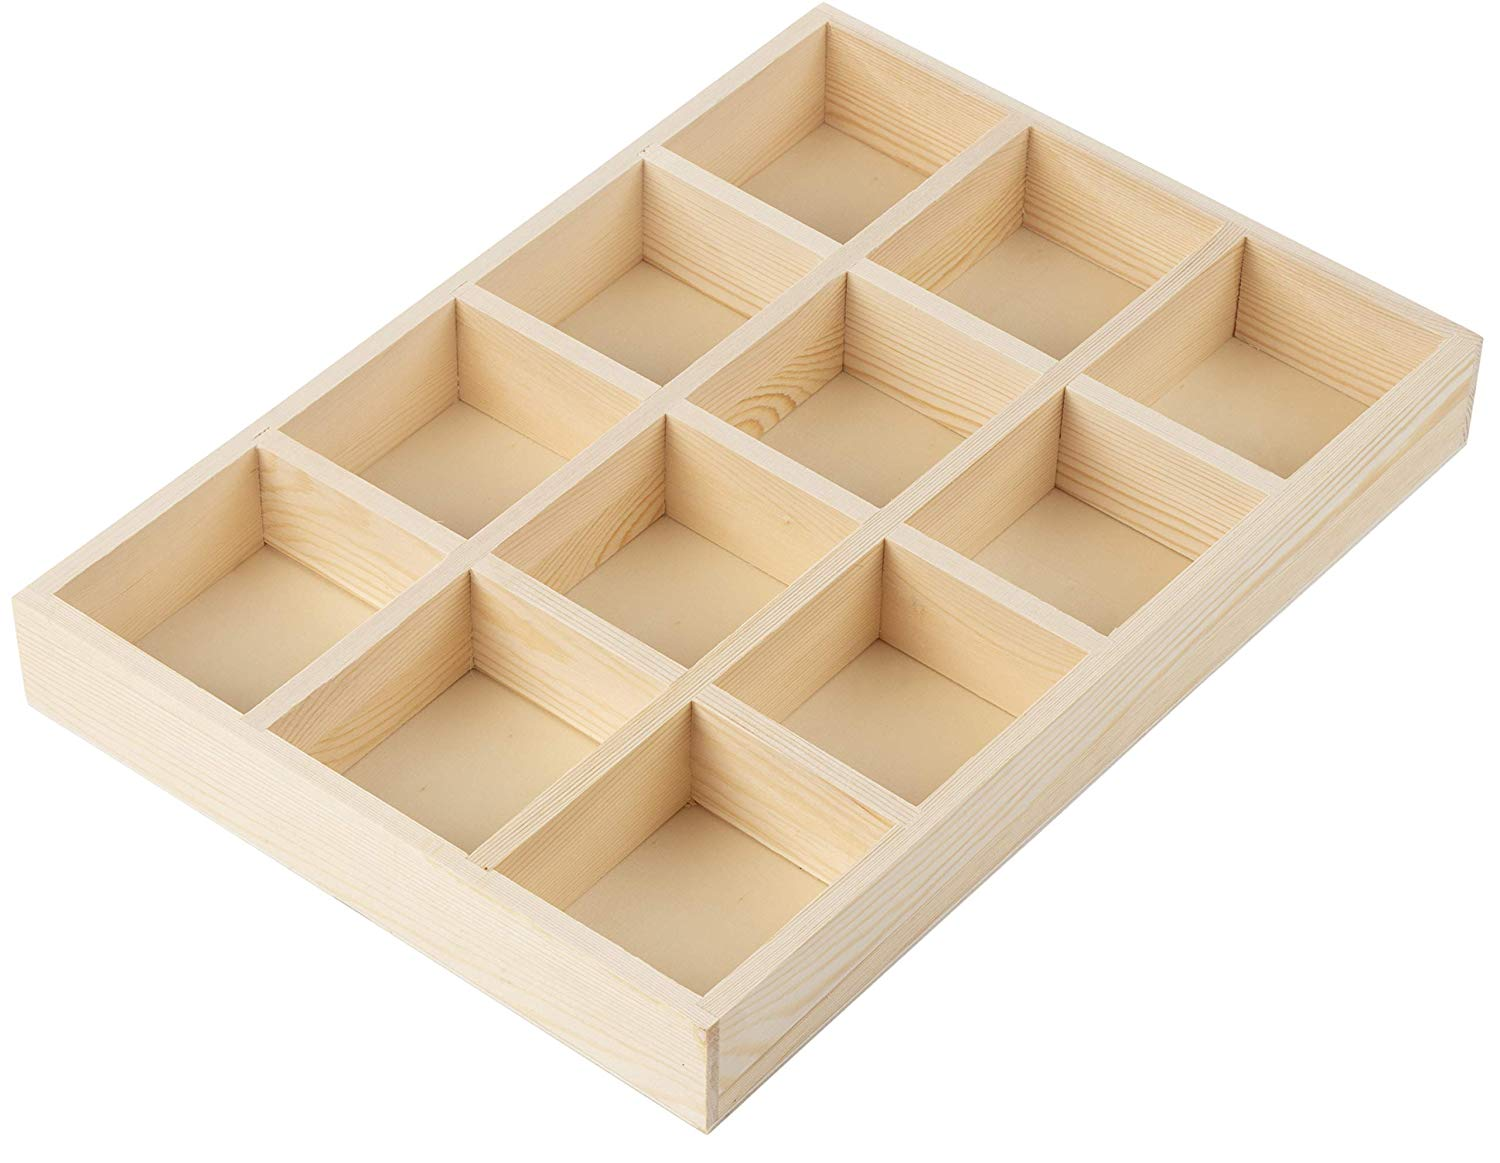 Wooden Drawer Organizer - Desk Organizer, Divided Storage Box, Display Tray, for Small Items, Miniature Plant, Jewelry, Craft, Stationary, 12 Grids, Natural Brown, 13.2 x 9.2 x 1.58 Inches